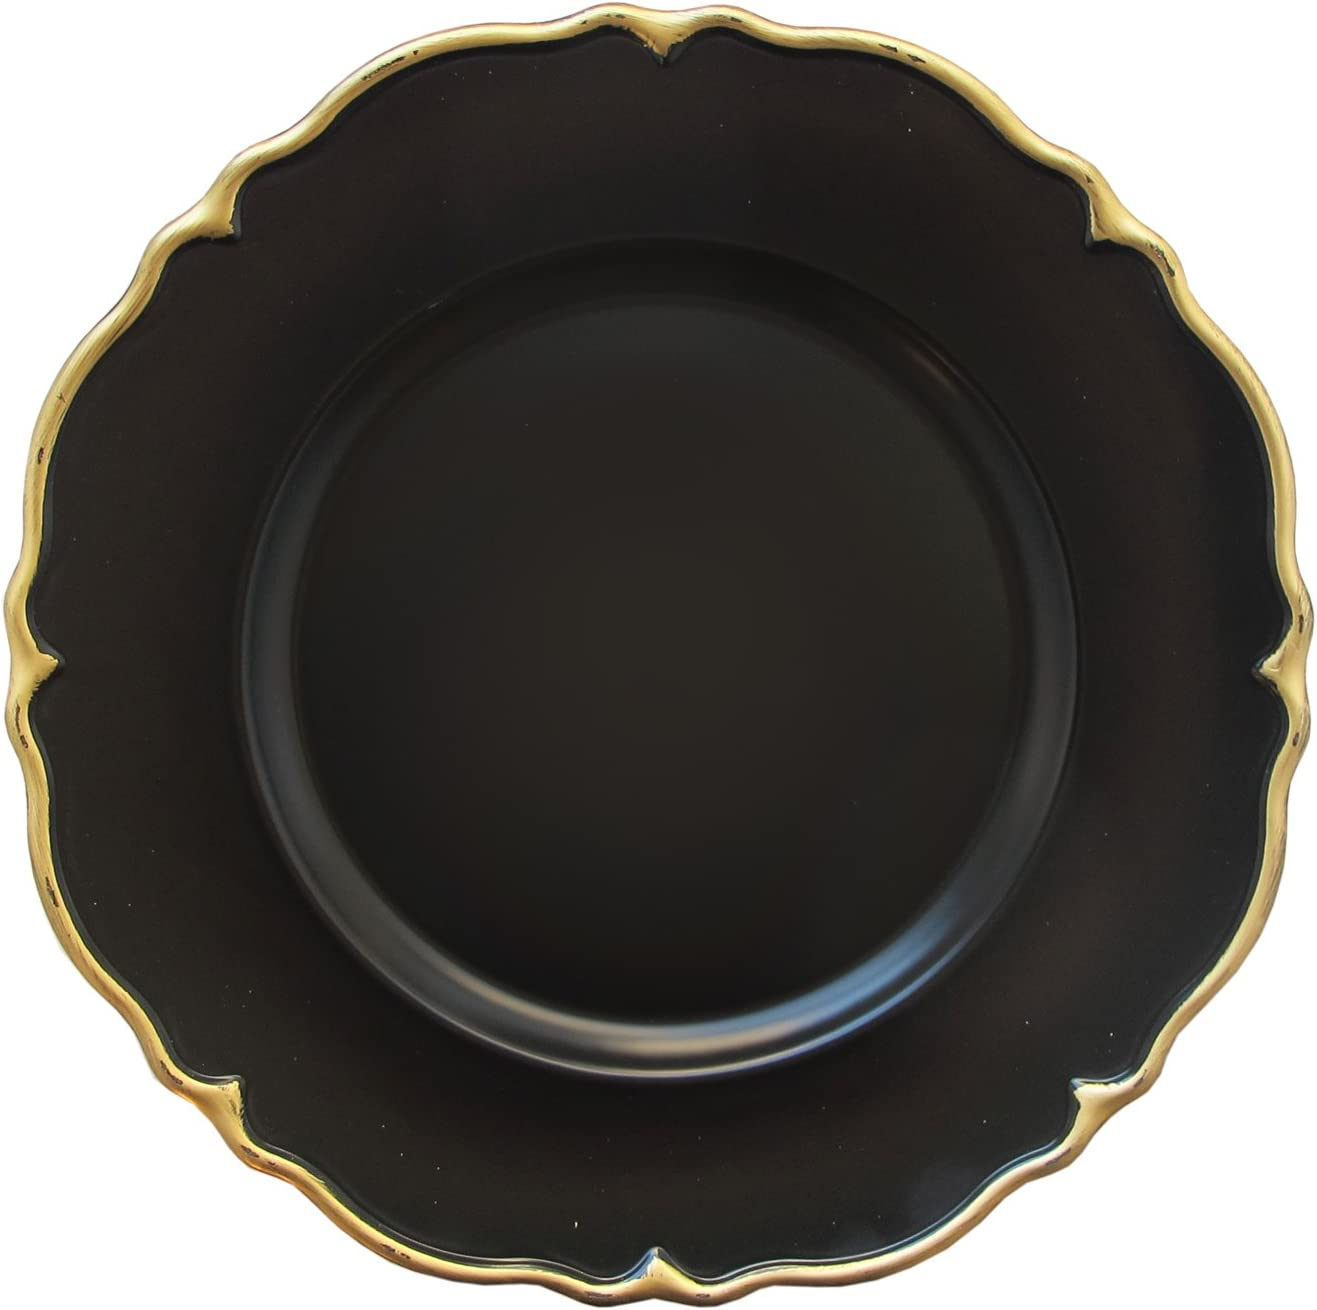 """Elle Decor Scallop Set of 4 Charger Large 13"""" Decorative Melamine Service Plate for Home & Professional Fine Dining-For Catering Events, Dinner Parties, Weddings, Black"""